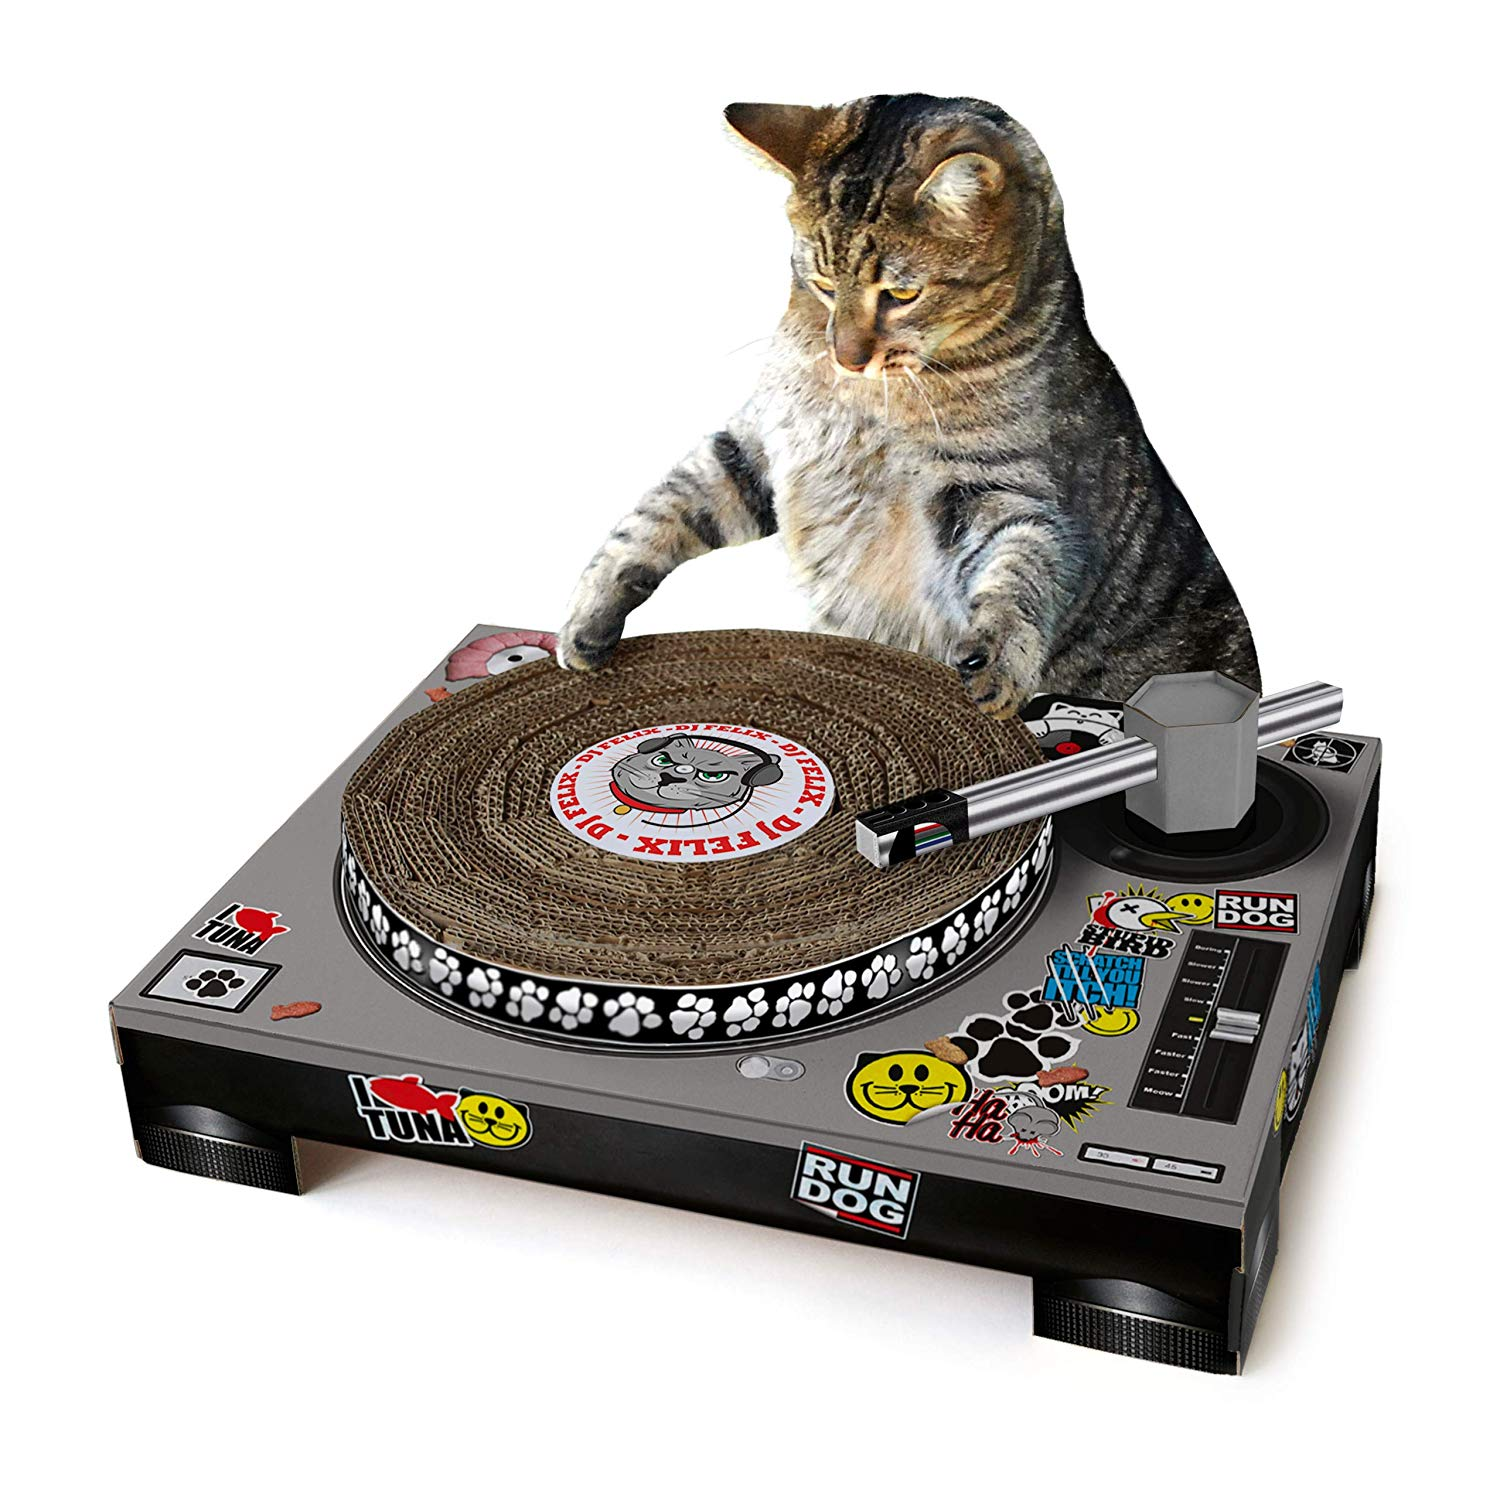 Cat DJ Starter Kit - Palmer asked me for this for Christmas this year and I just couldn't say no. I know that a career as a cat DJ isn't an easy career but who am I to crush his dreams?